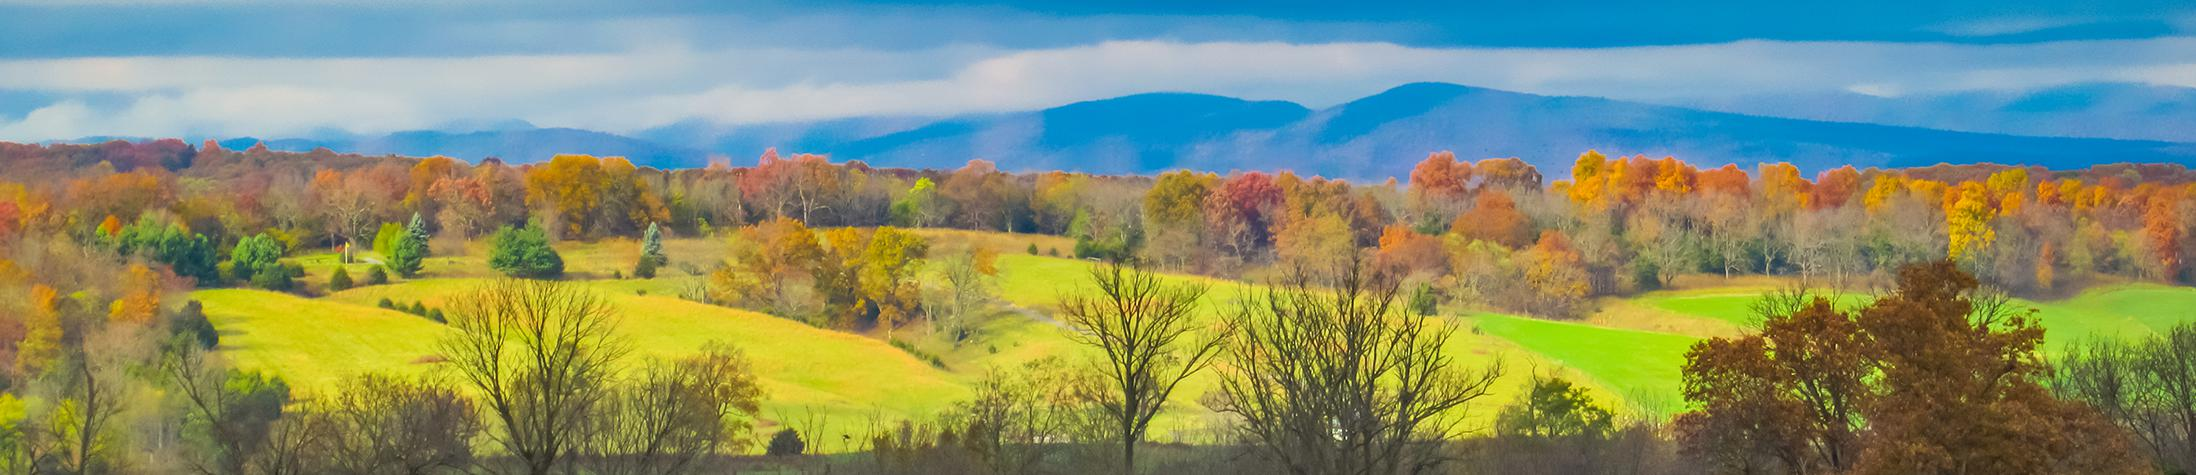 Rockingham County Scenery